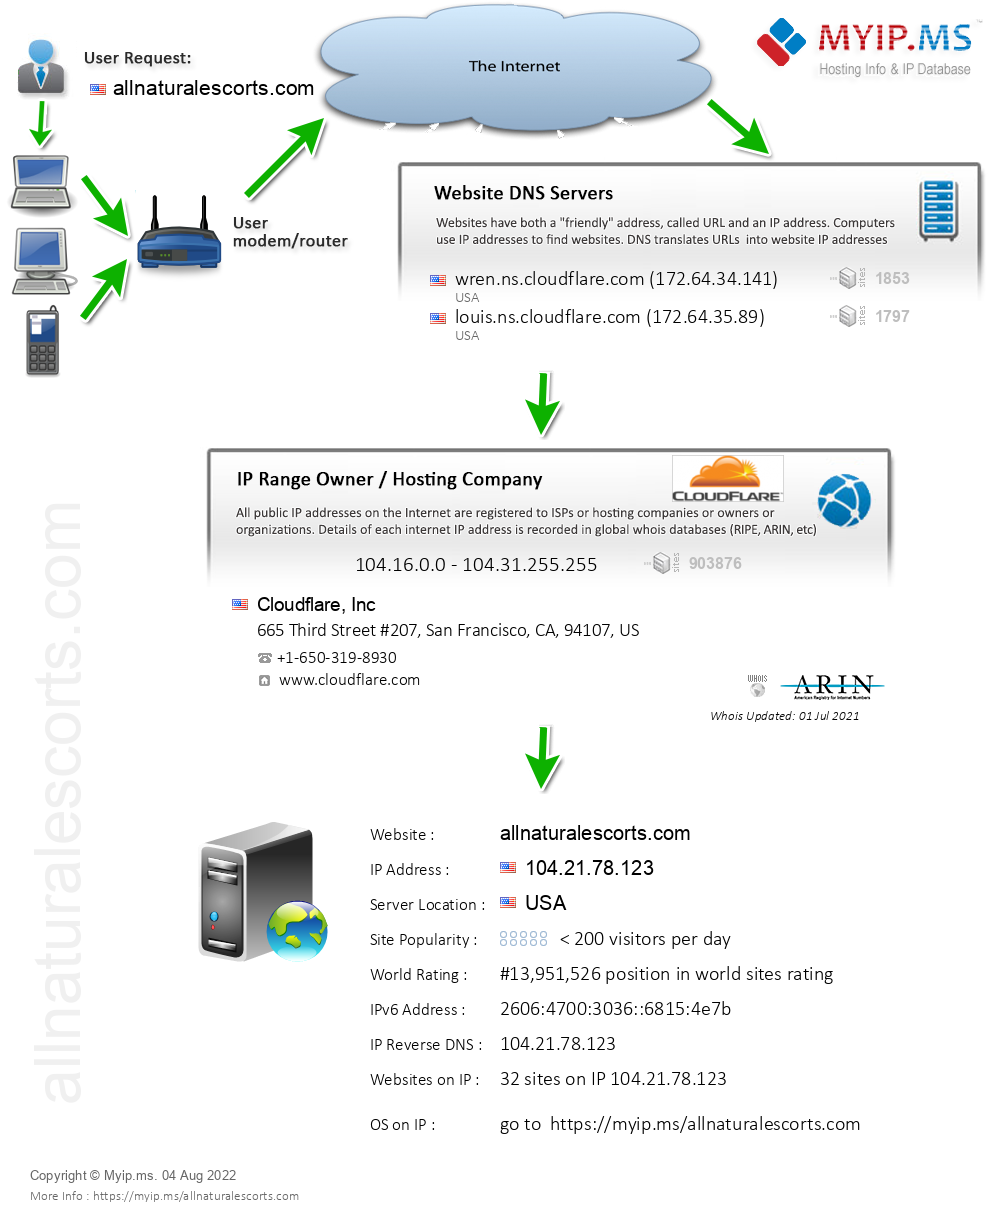 Allnaturalescorts.com - Website Hosting Visual IP Diagram